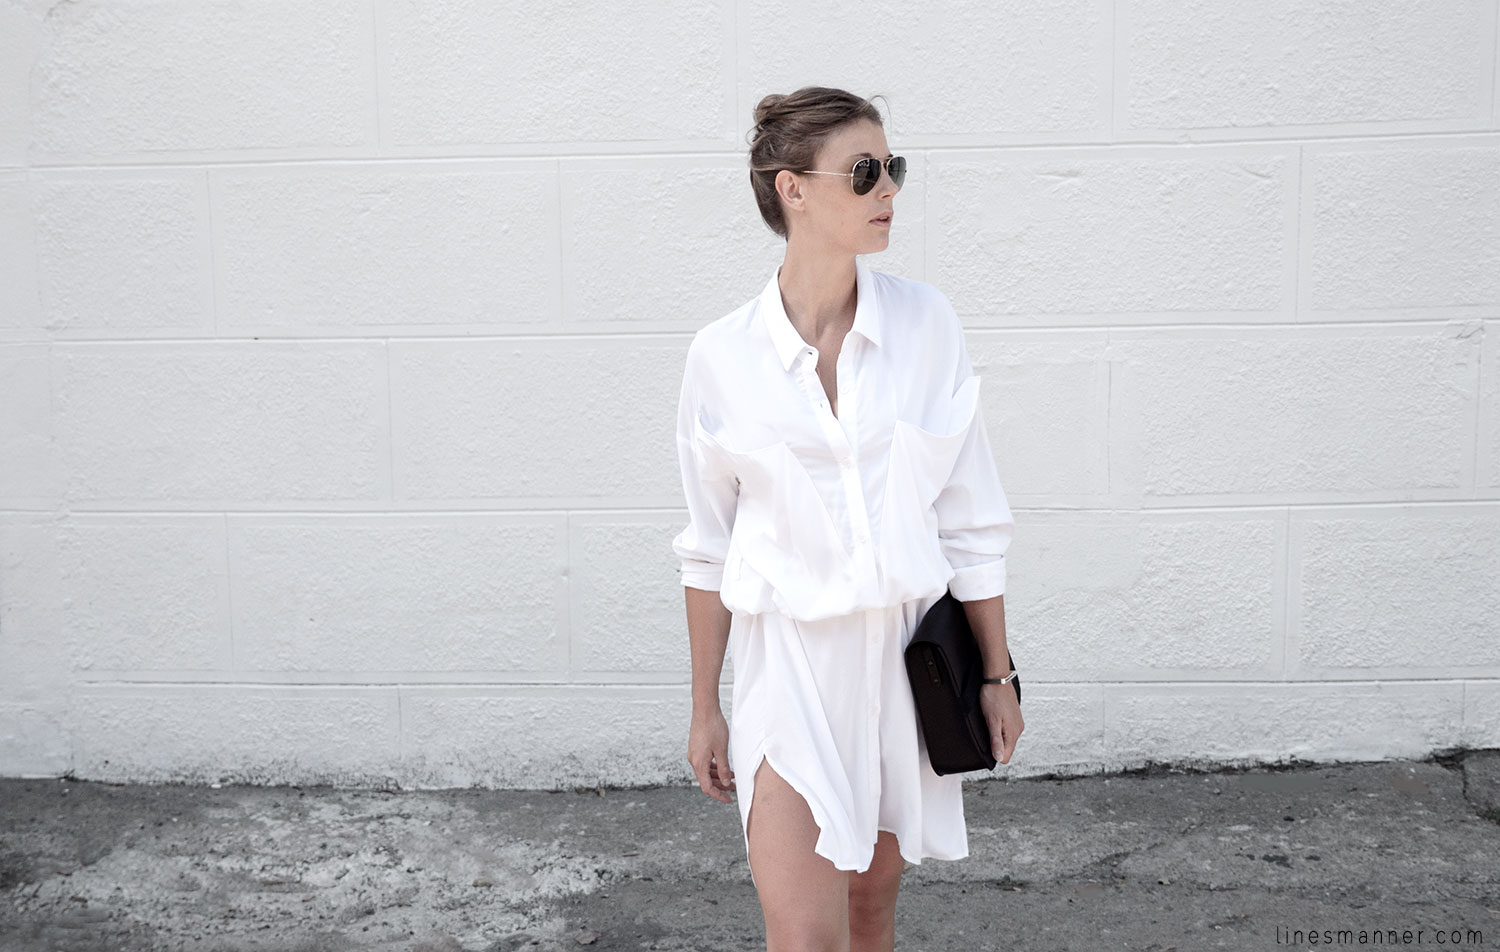 Lines-Manner-Whiteout-Fashion-Minimal-Clean-Fresh-Brigthly-All_White-Monochrome-Immaculate-Trend-Style-Sleek-Slouchy-Details-White_Shirt-Transeasonal-Dressing-Outfit-3